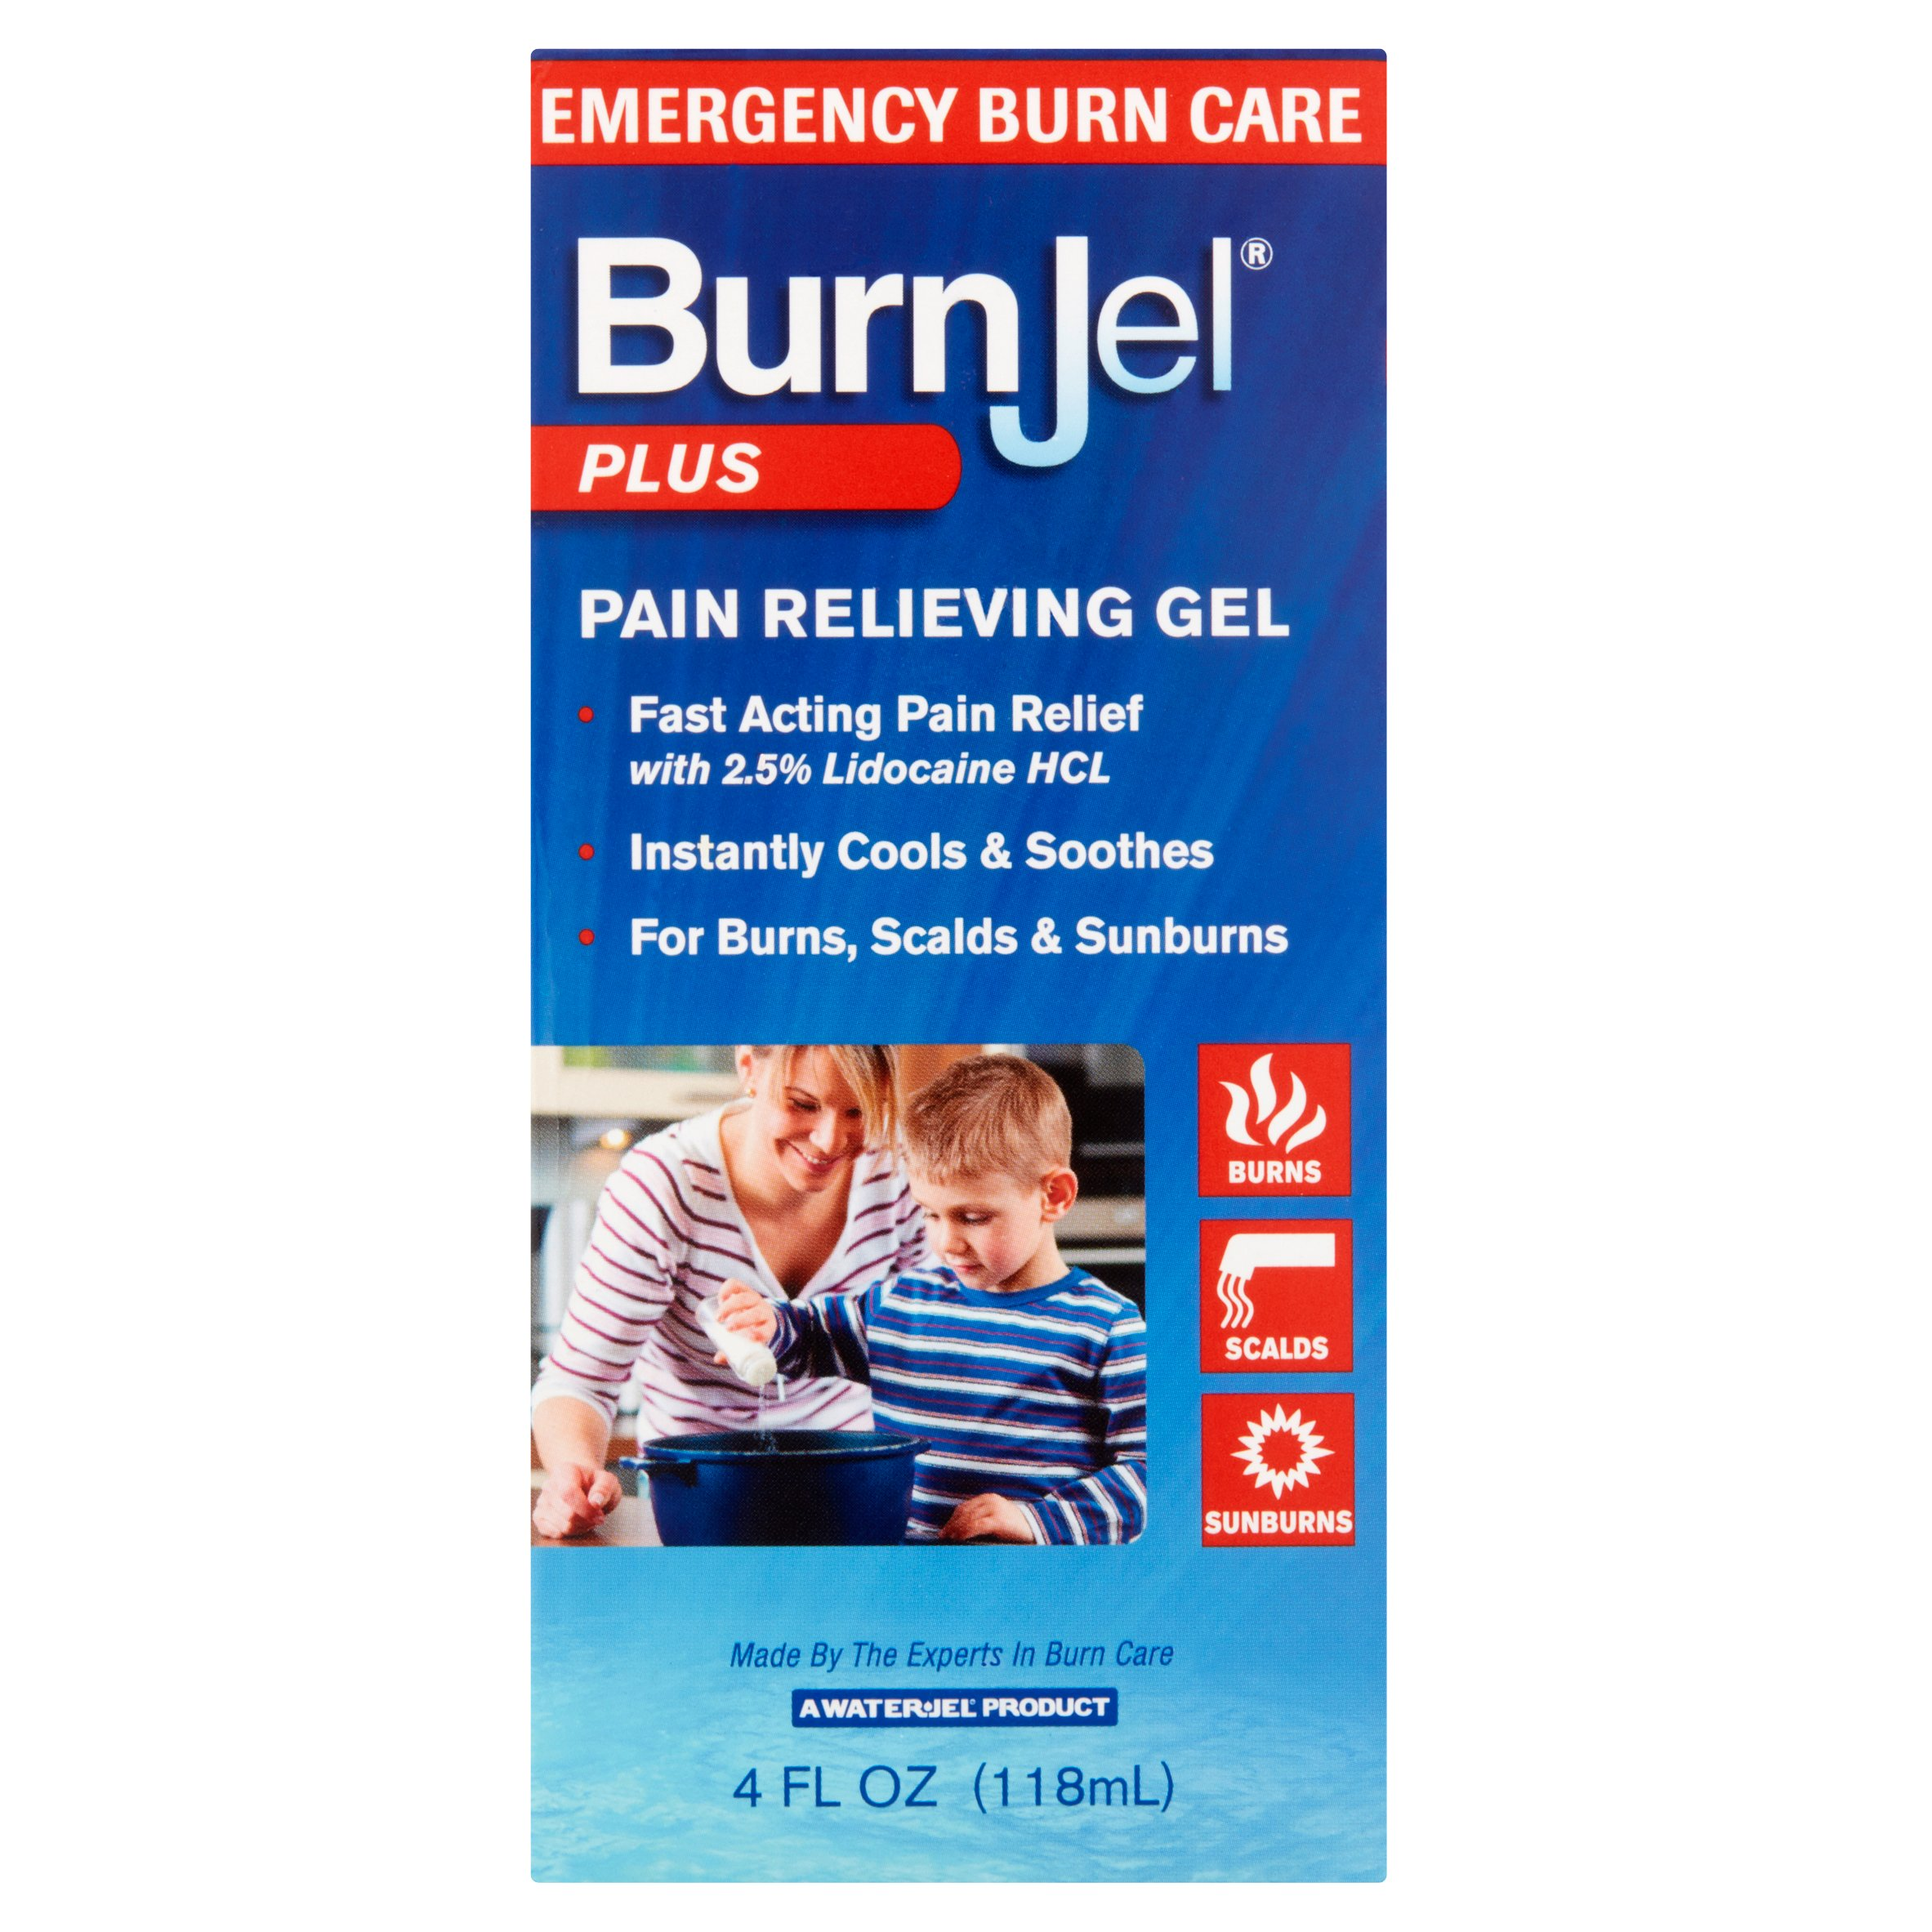 Water-Jel BurnJel Plus Pain Relieving Gel, 4 fl oz